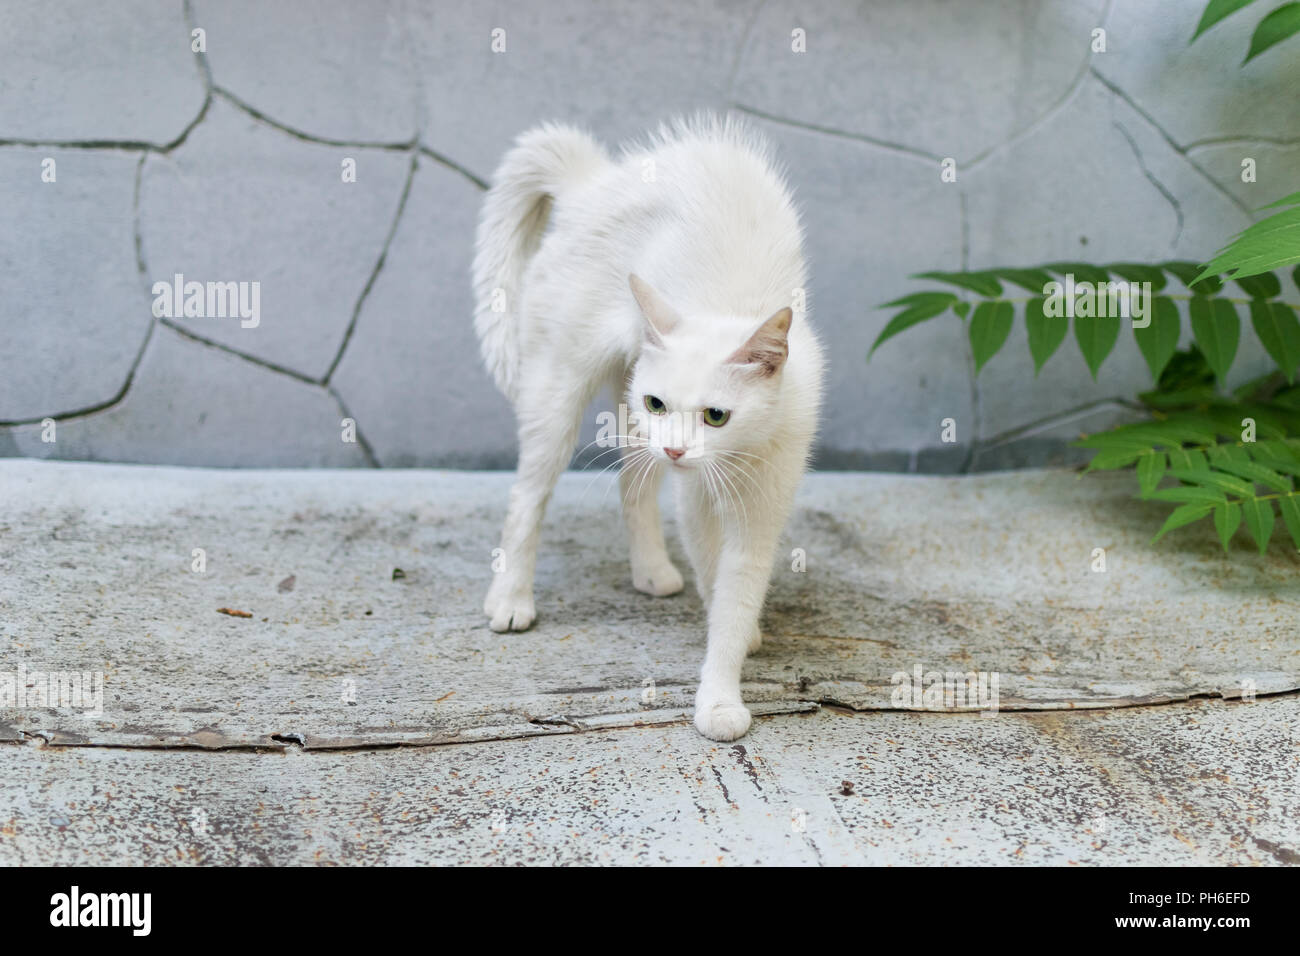 A white stray cat feels threatened and makes a hunchback. Cat rounded defending. - Stock Image